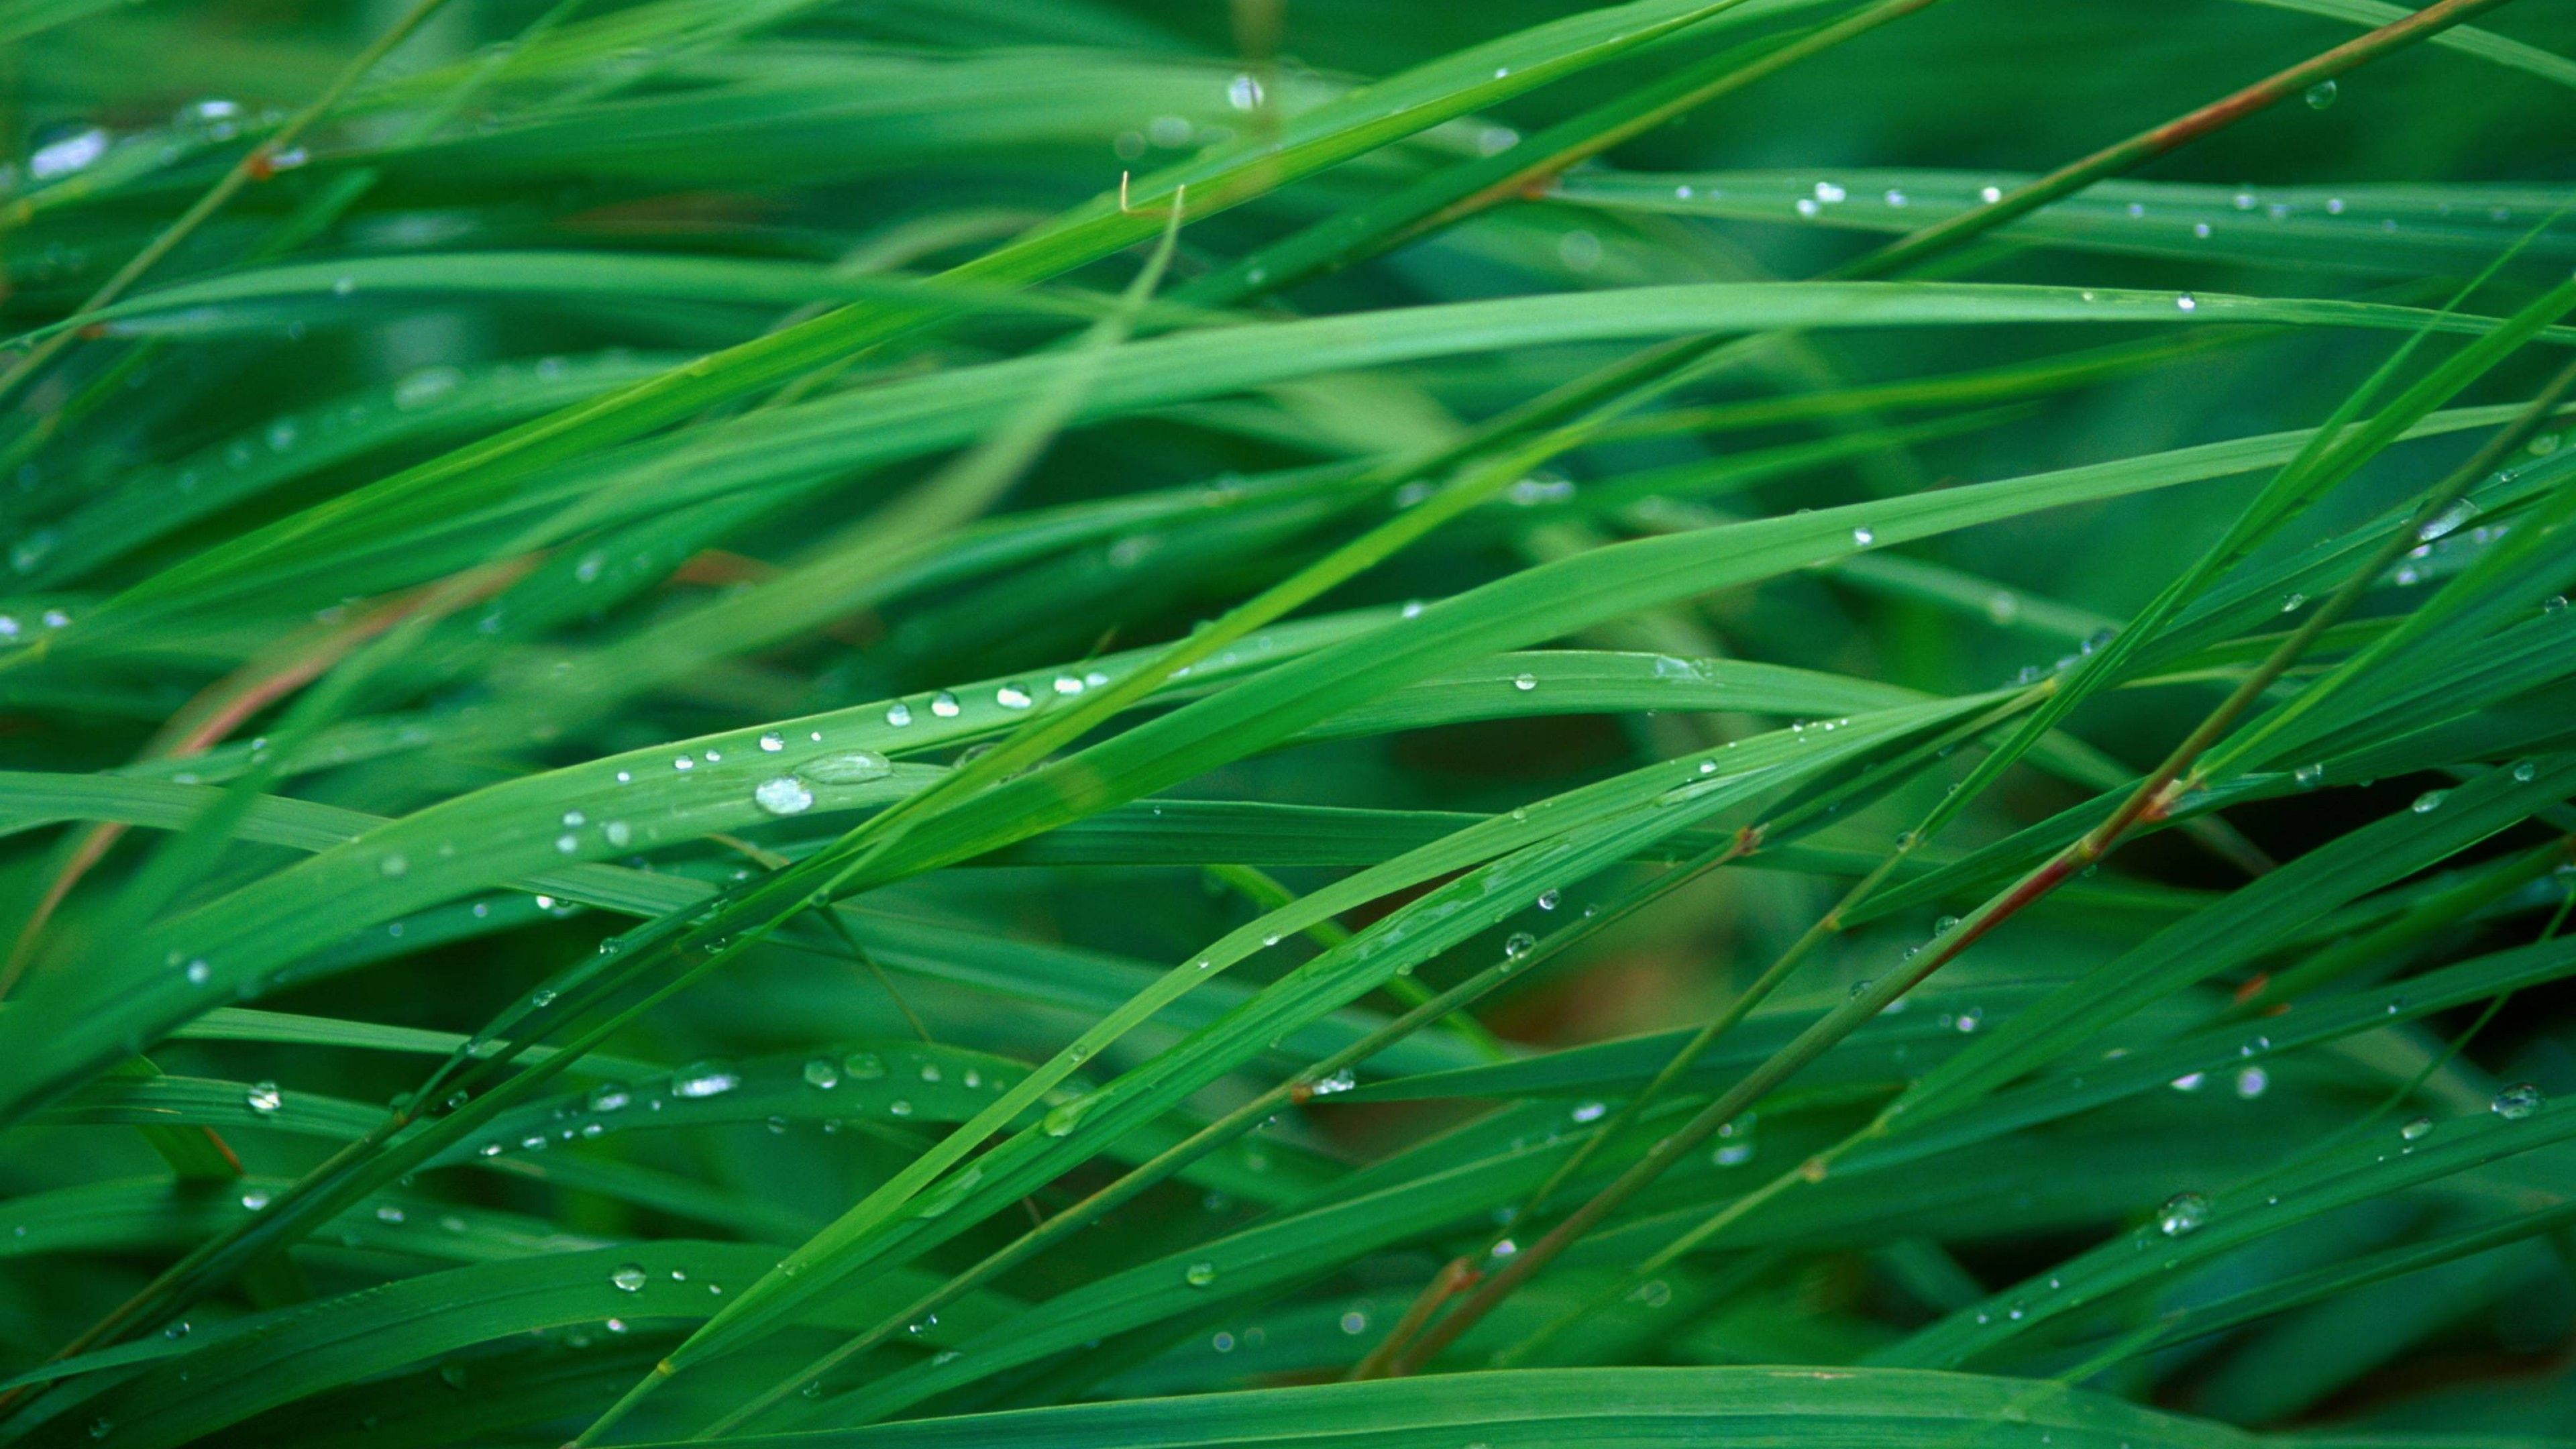 Grass 5k 4k Wallpaper Osx Green Dew 23922 Grass Wallpaper Grass Desktop Wallpaper